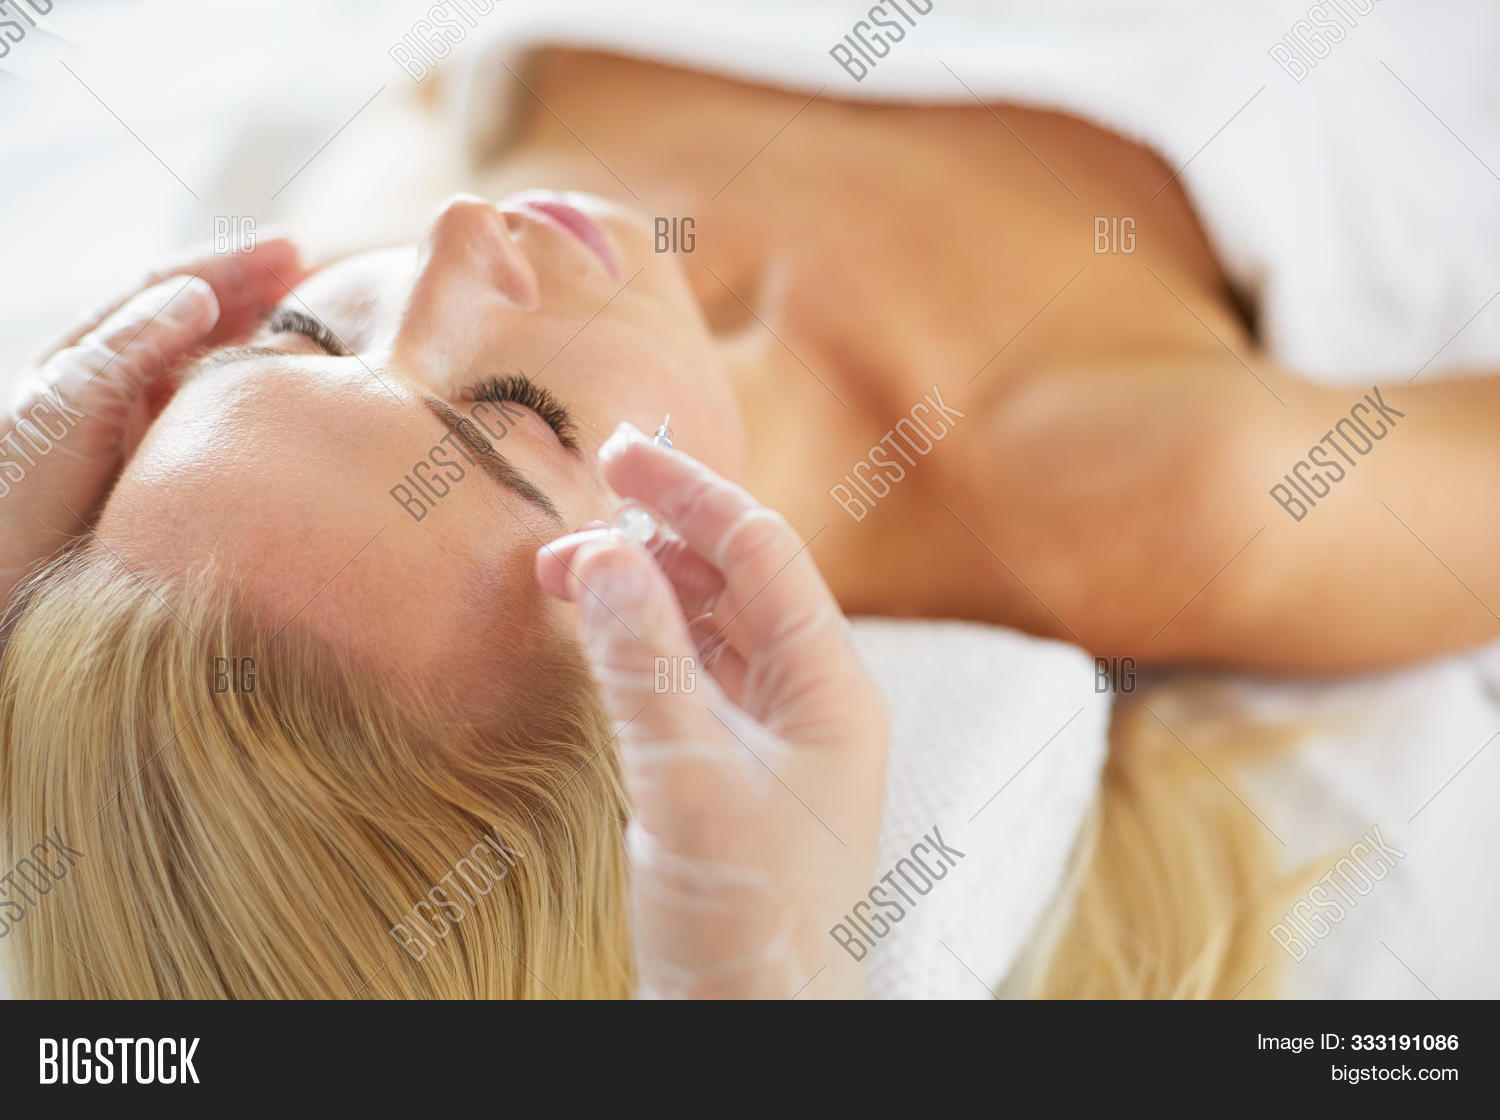 adult,aesthetic,aged,aging,beautician,beautiful,beauty,blue,body,care,caucasian,clinic,concepts,cosmetologist,doctor,eyes,face,facial,female,fillers,girl,gloves,hand,health,healthy,holding,improvement,injections,lifestyle,medical,medicine,middle,patient,perfection,plastic,preparation,process,profile,rejuvenating,salon,skin,spa,surgery,syringe,take,treatment,white,woman,wrinkle,young